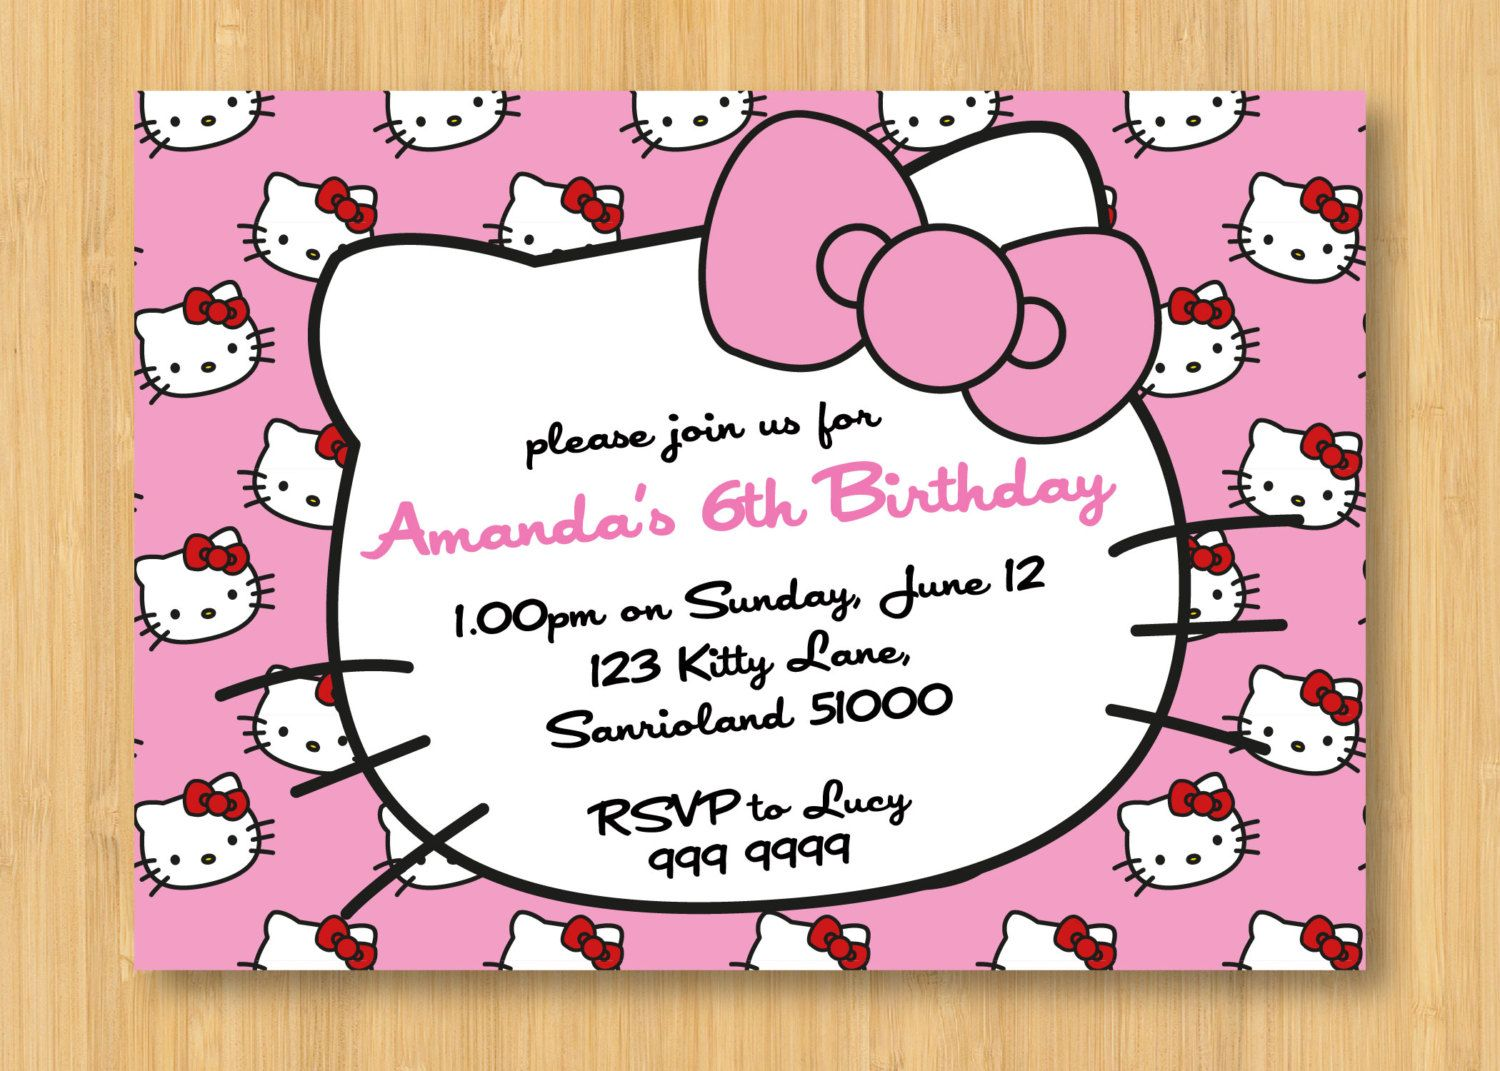 Hello Kitty Printable Birthday Invitations Hello Kitty Invitations Hello Kitty Invitation Card Hello Kitty Birthday Invitations